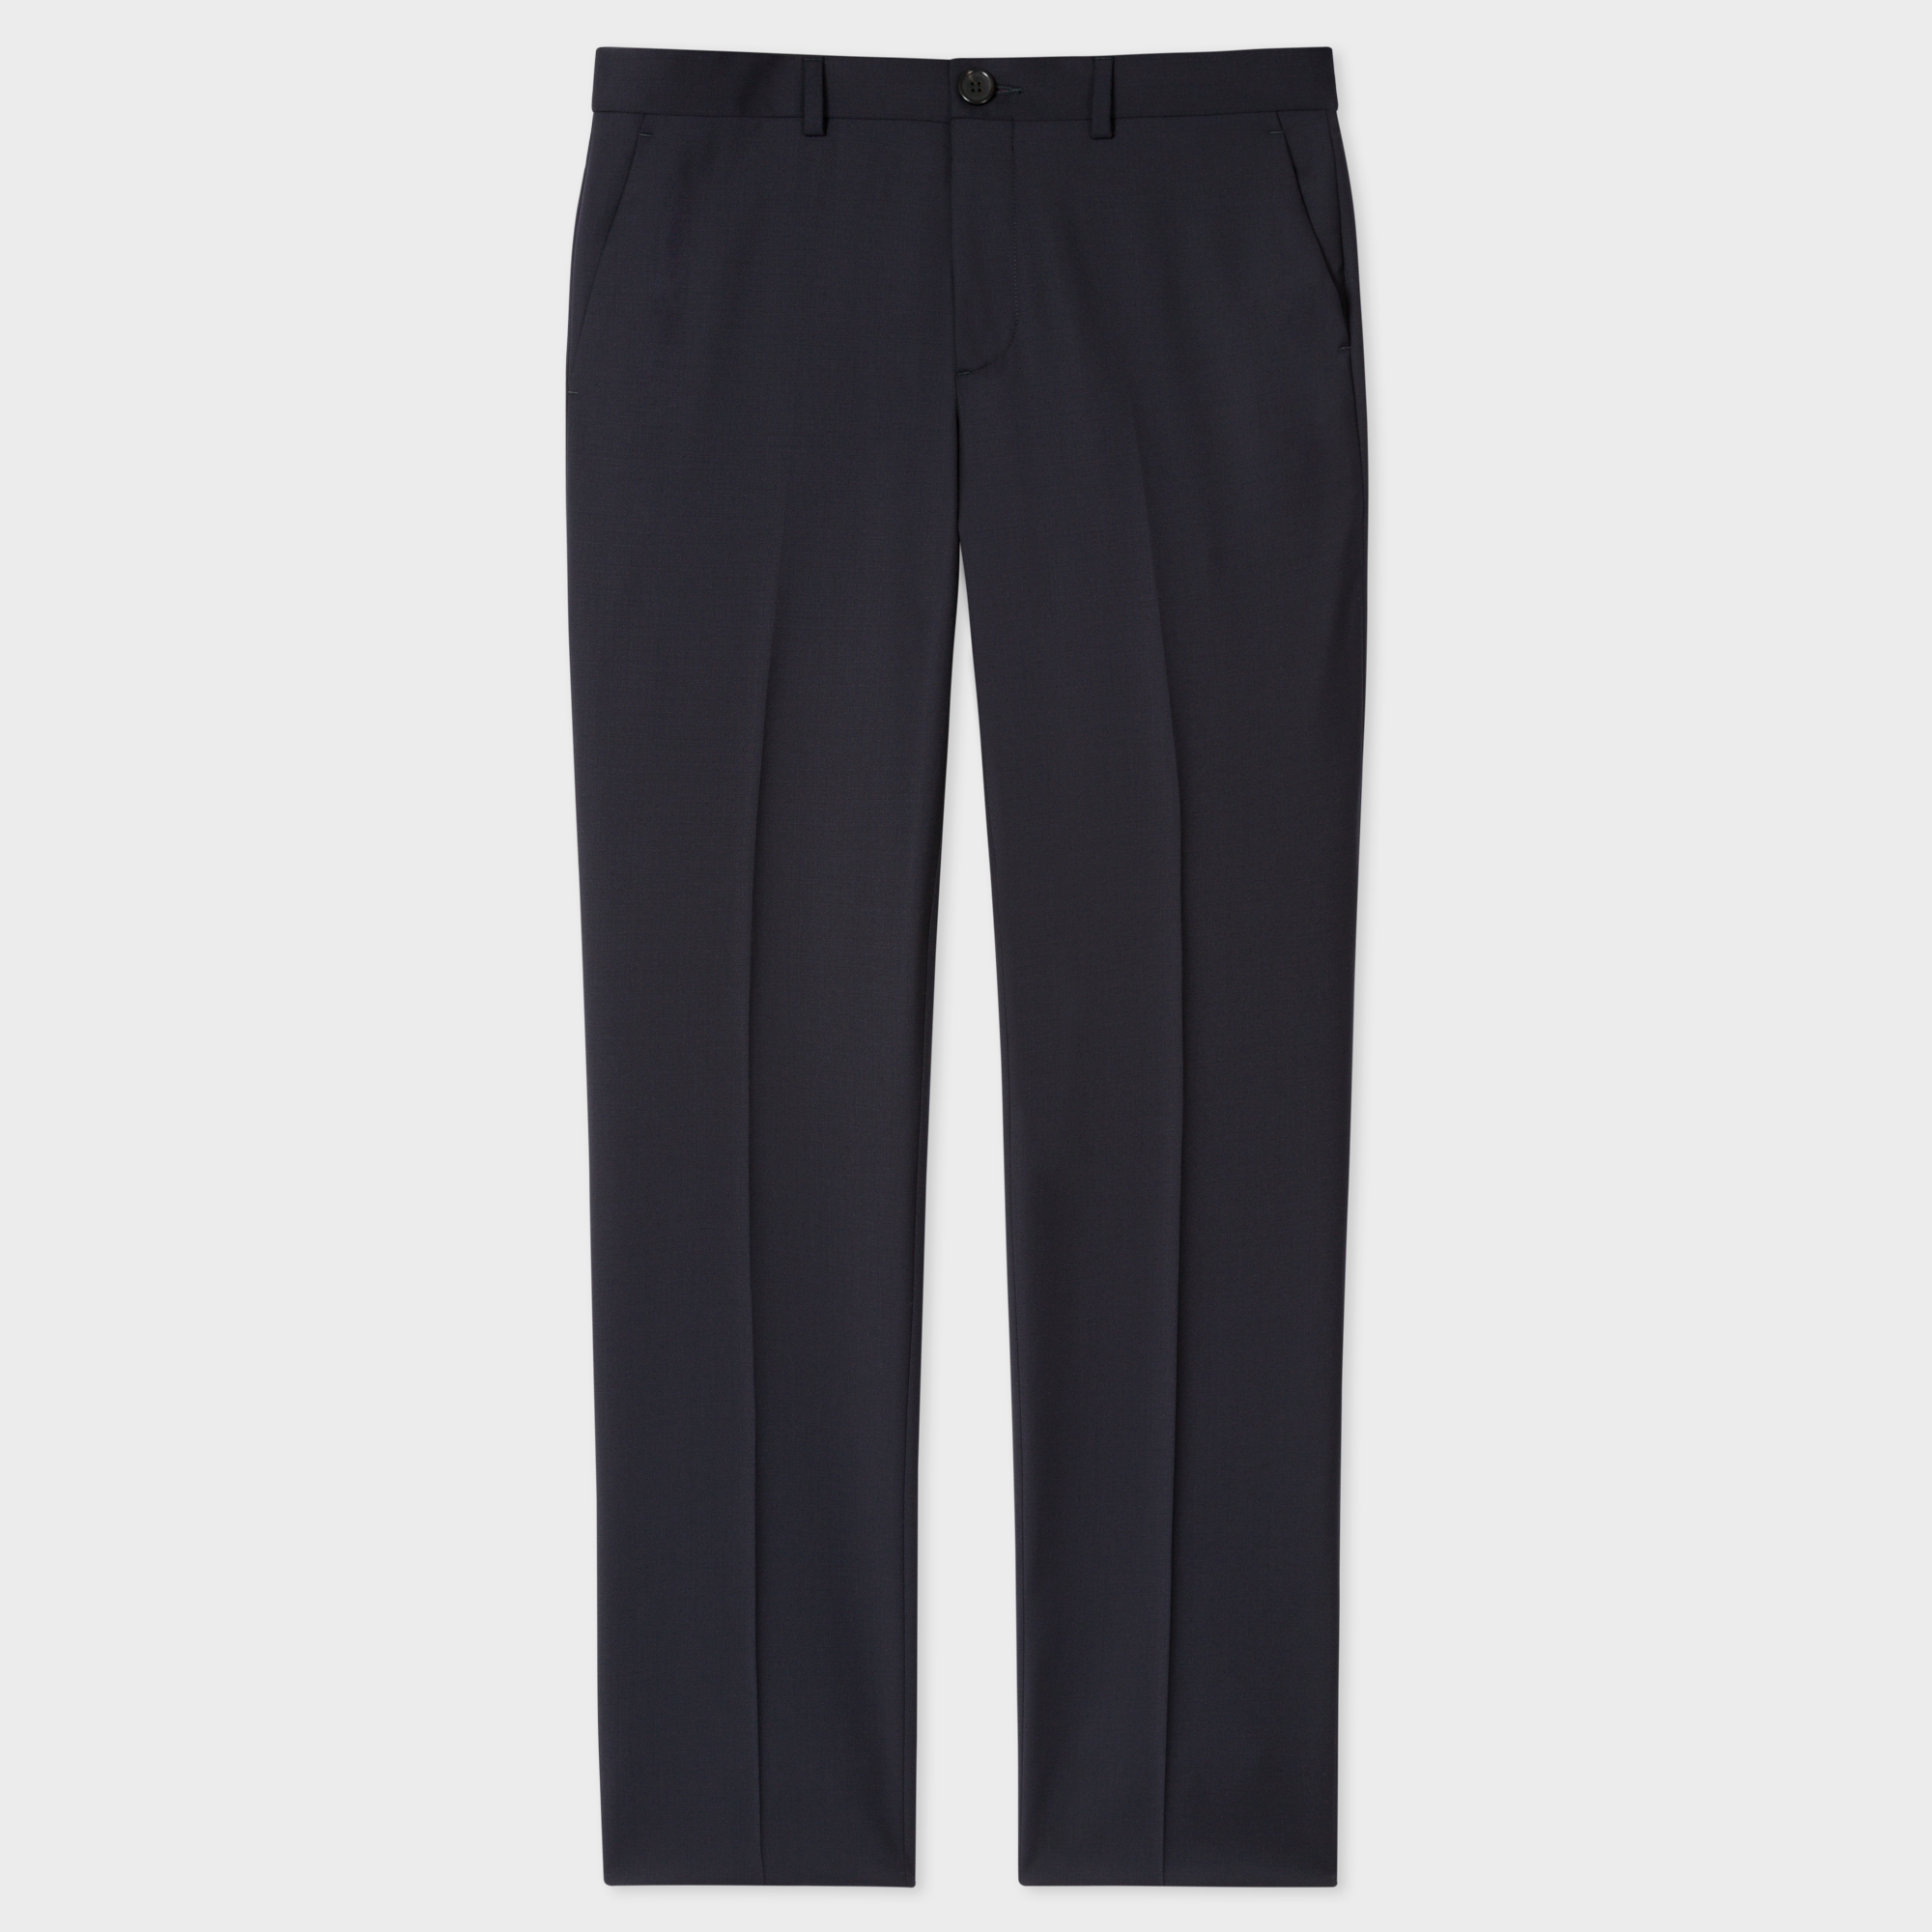 Paul Smith Men's Mid-Fit Navy Wool Trousers